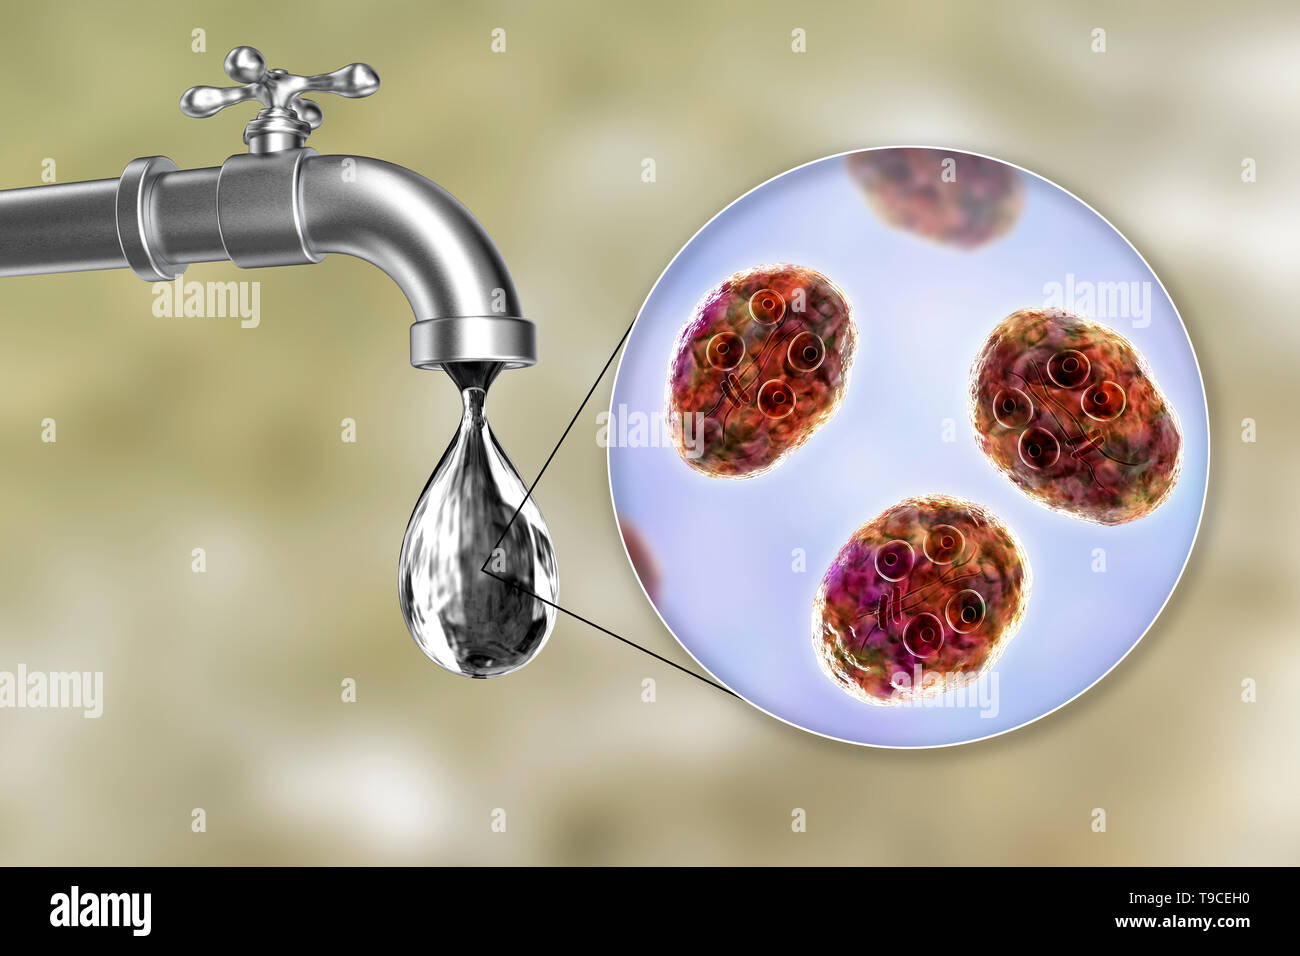 Safety of drinking water. Conceptual computer illustration showing cysts of Giardia intestinalis parasite in a drop of water. - Stock Image